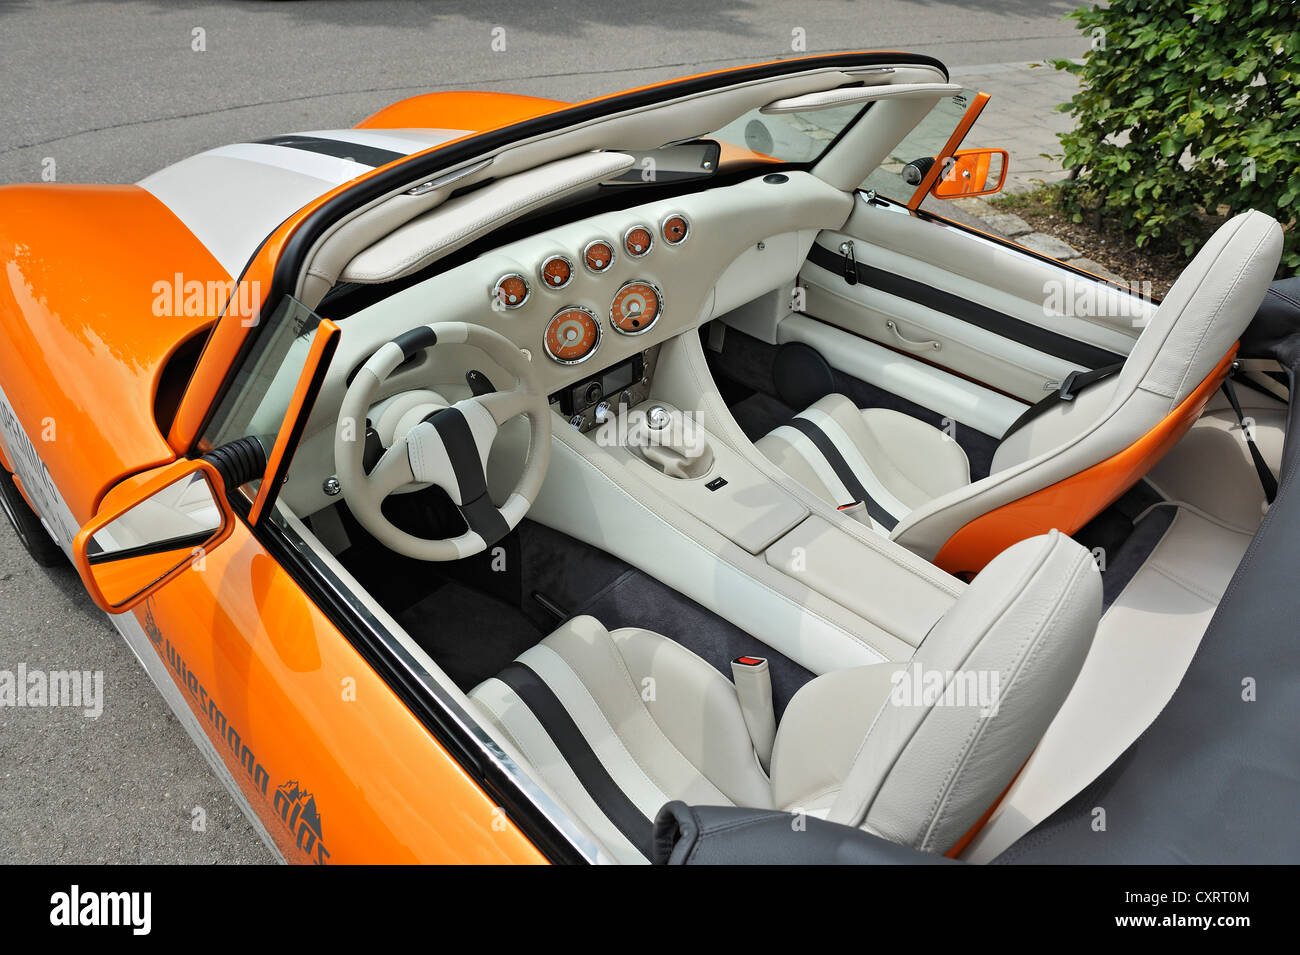 wiesmann sports car interior design dashboard munich bavaria stock photo royalty free image. Black Bedroom Furniture Sets. Home Design Ideas